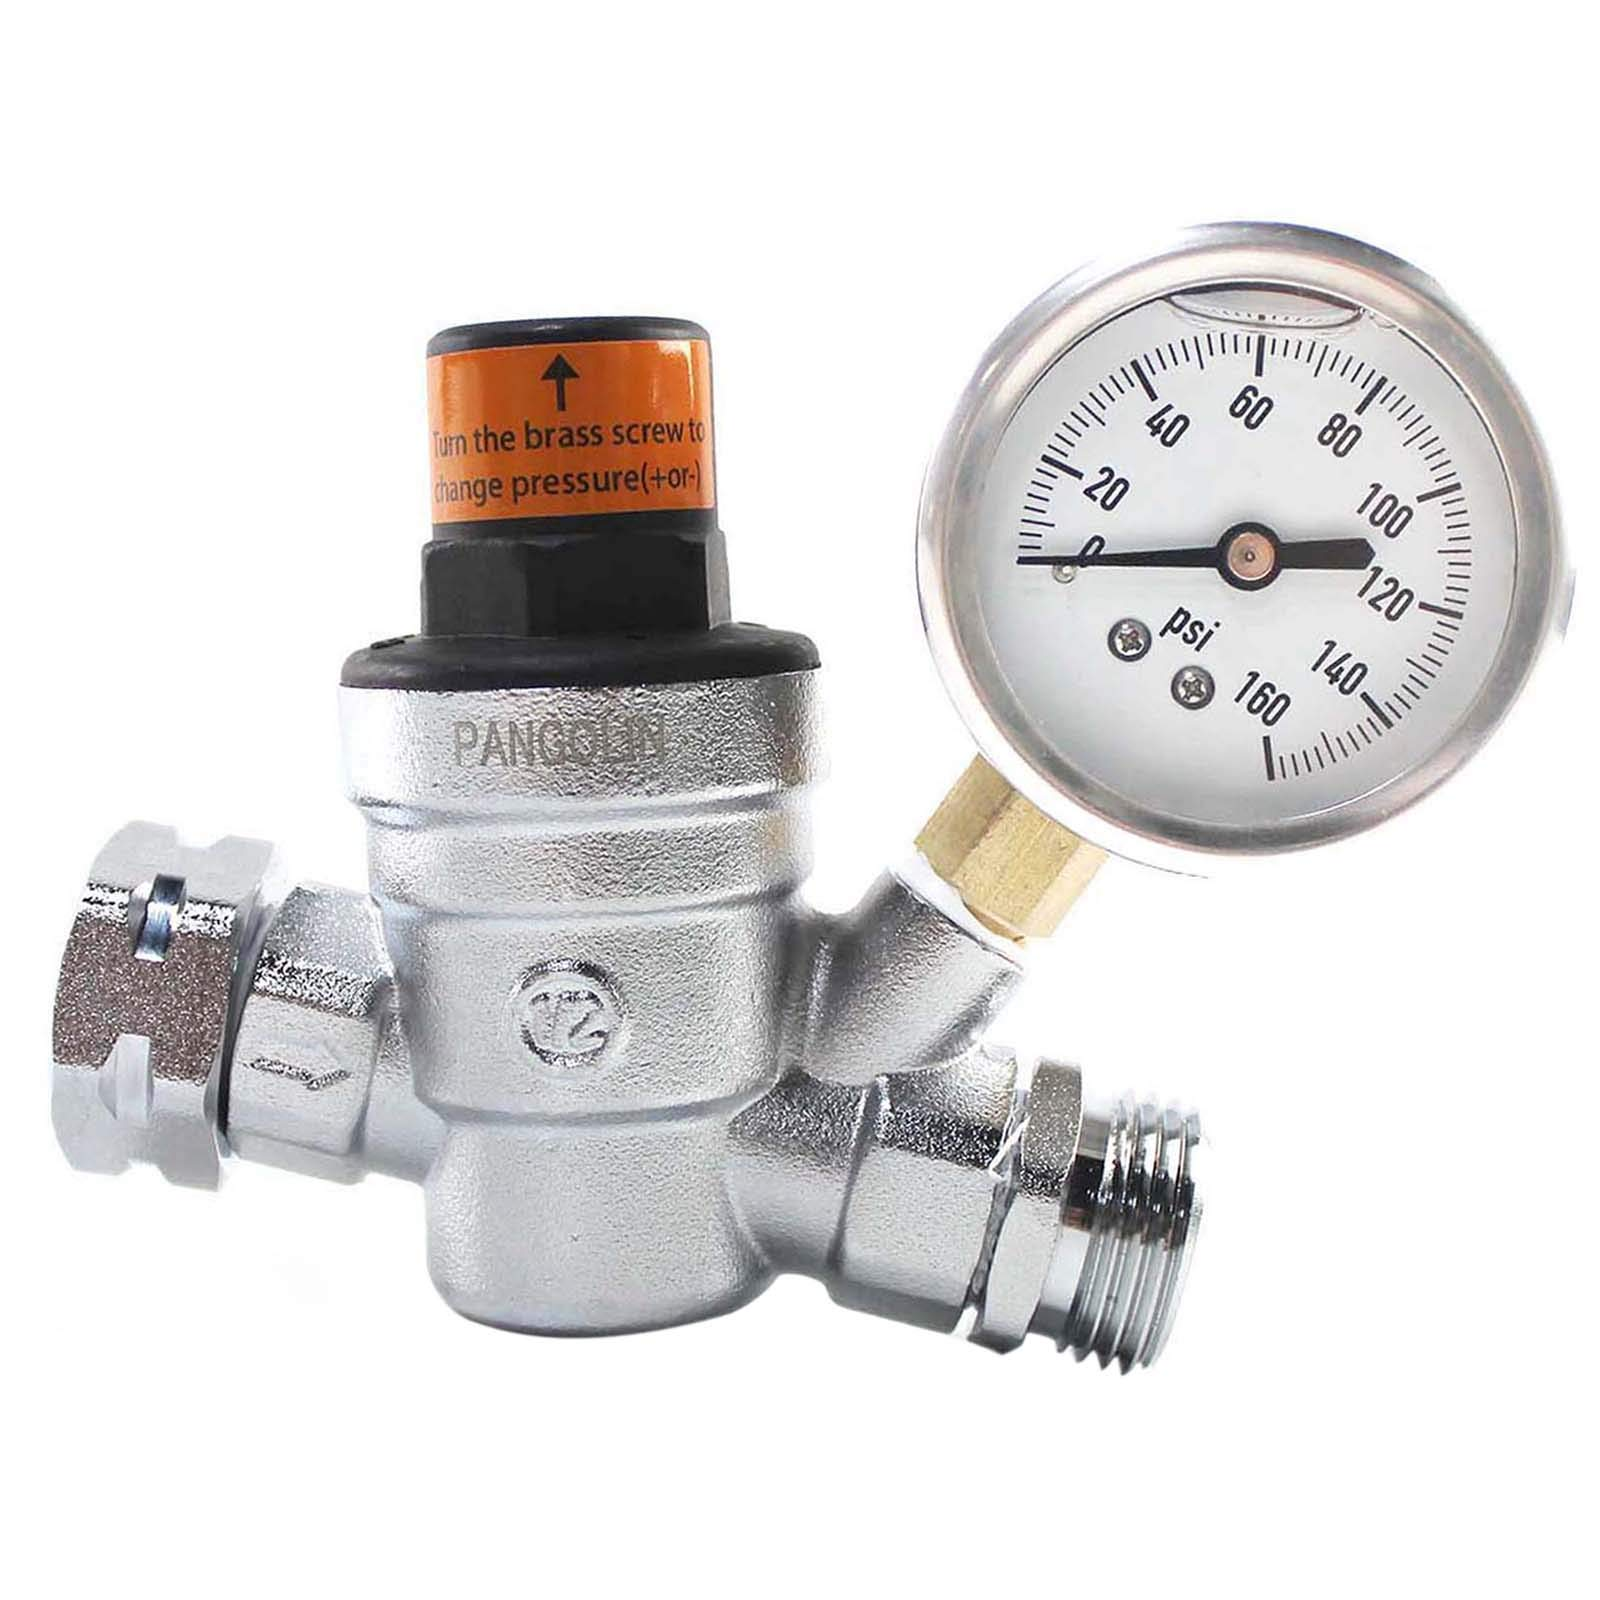 PANGOLIN Water Pressure Regulator Valve with 160 PSI Gauge and Inlet Stainless Screened Filter RV Regulator Valve, 3/4'' NH Lead-Free Brass Adjustable Pressure Regulator for RV Camper, 2 Years Warranty by PANGOLIN